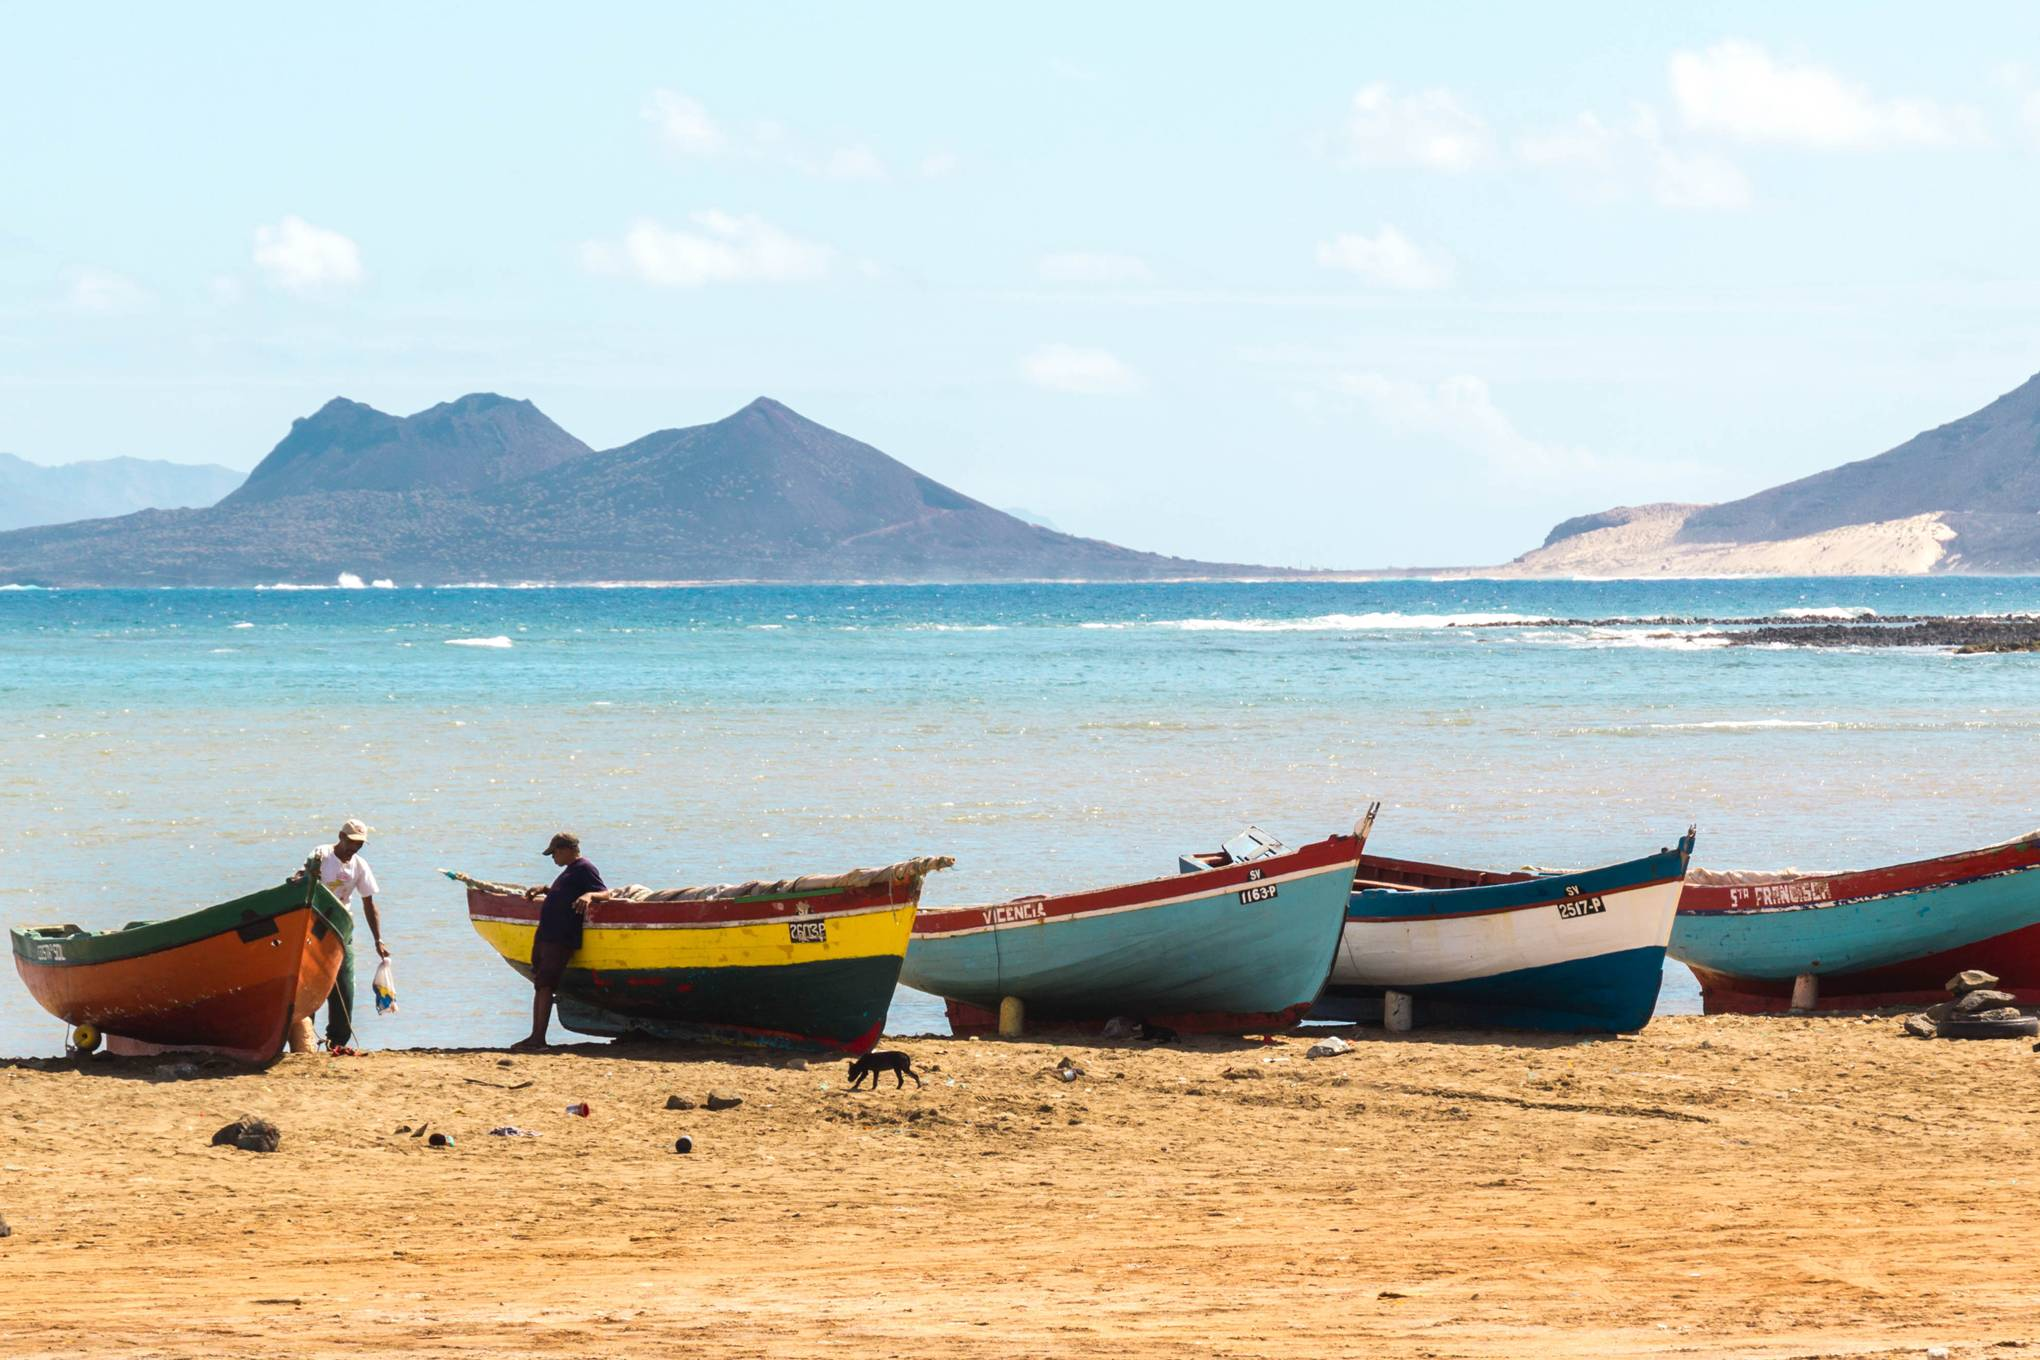 09-cape-verde-conde-nast-traveller-18sep18-getty